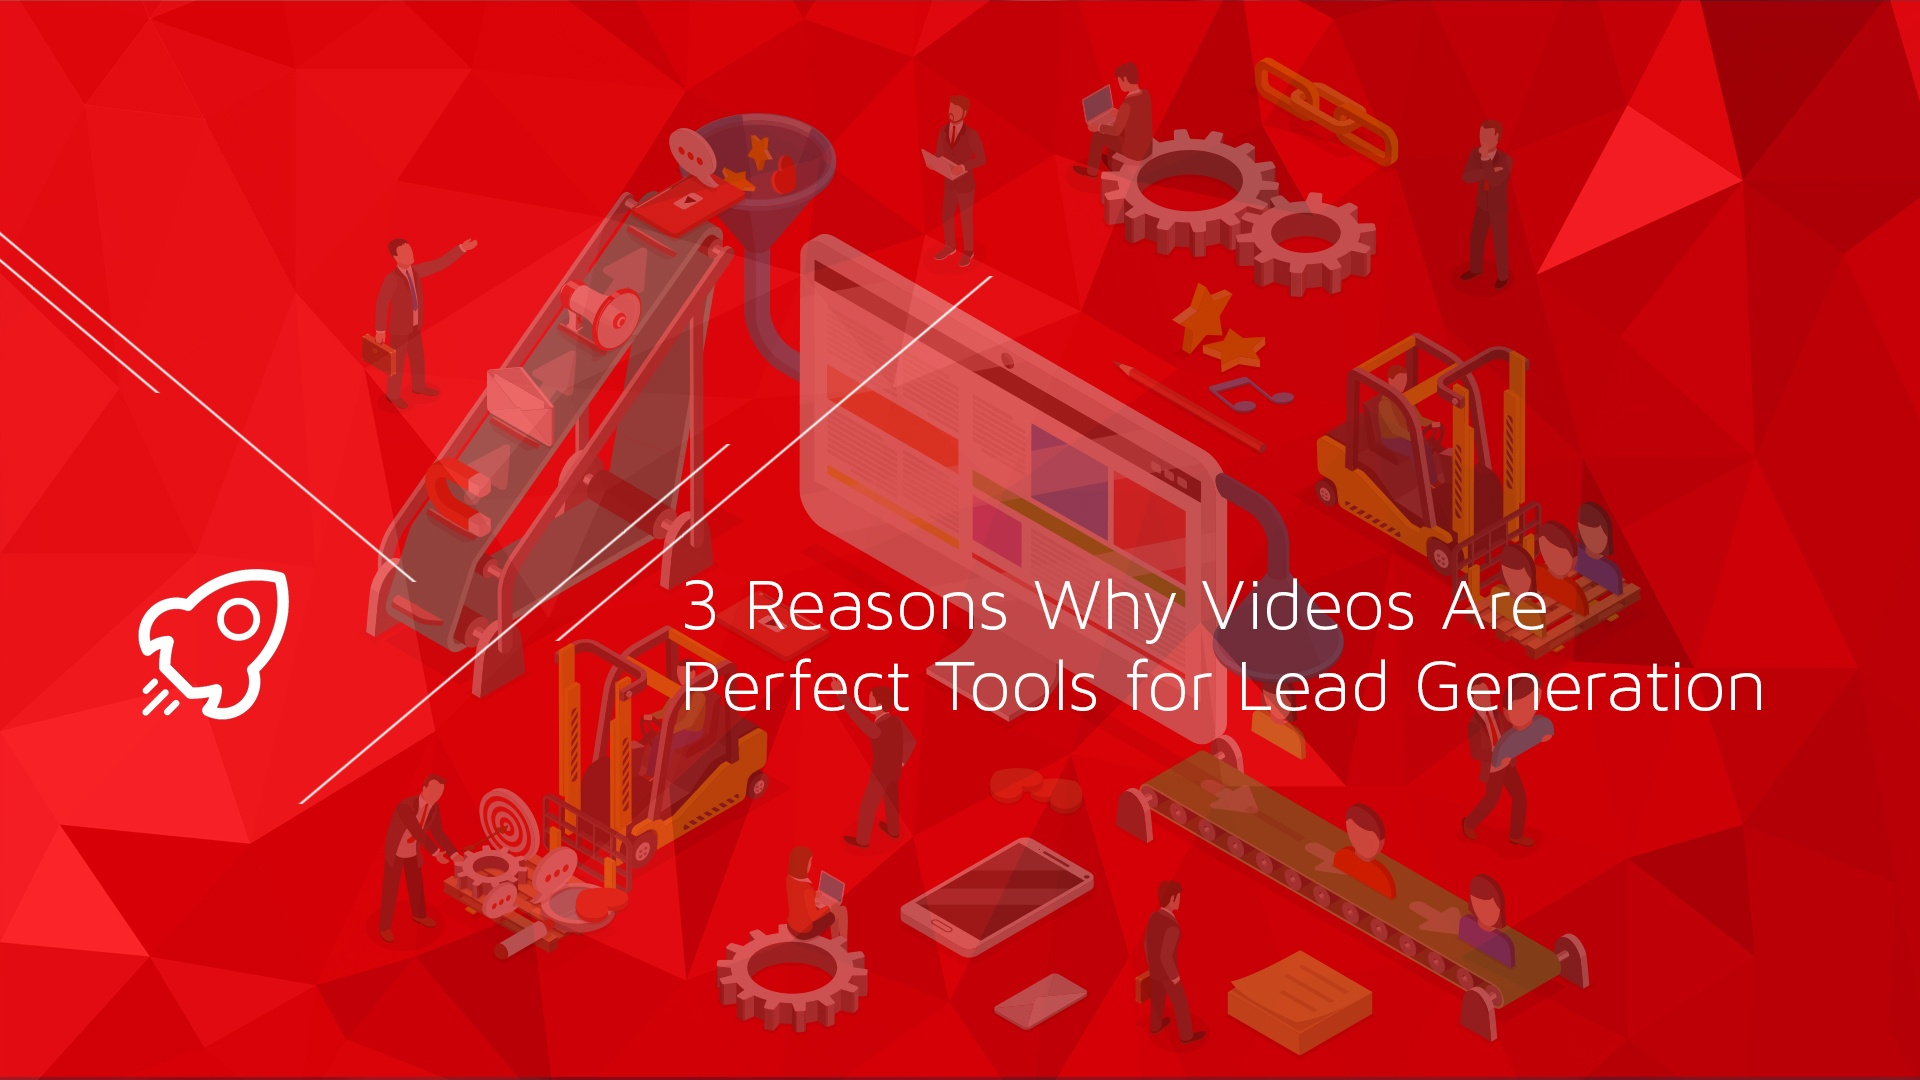 3 Reasons Why Videos Are Perfect Tools for Lead Generation